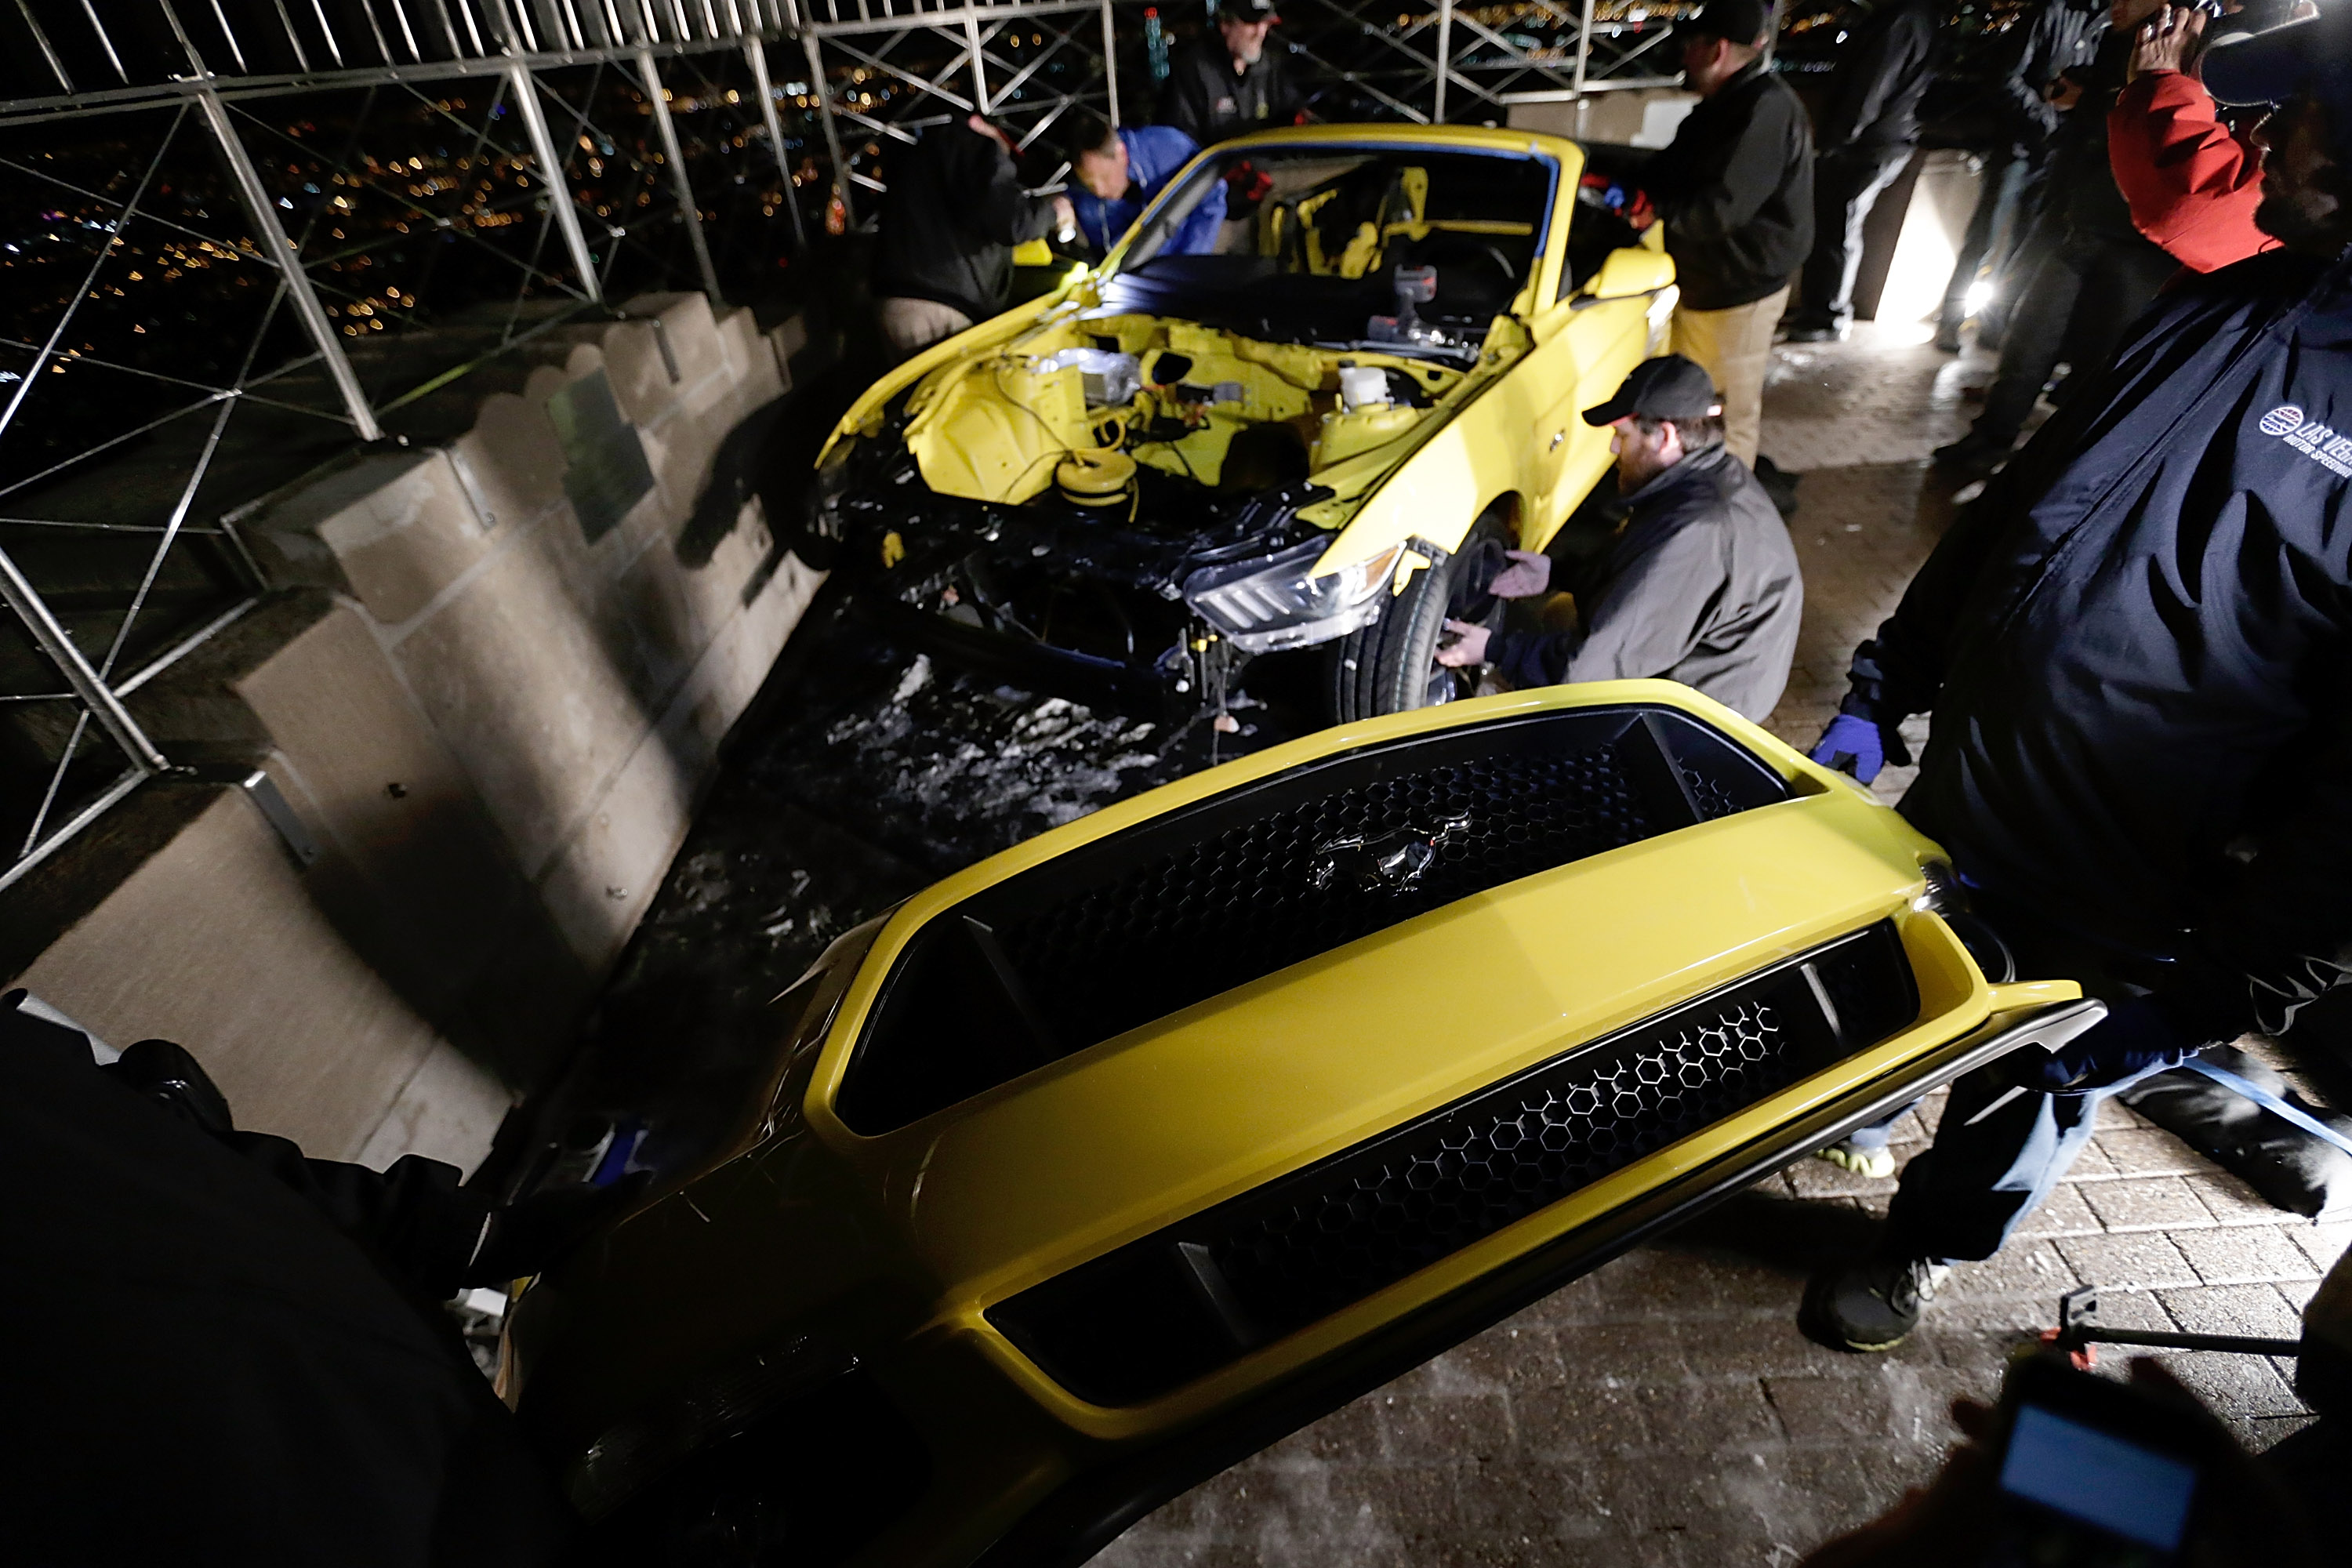 Workers re-assemble the Mustang prior to its unveiling at The Empire State Building on April 16, 2014 in New York City.